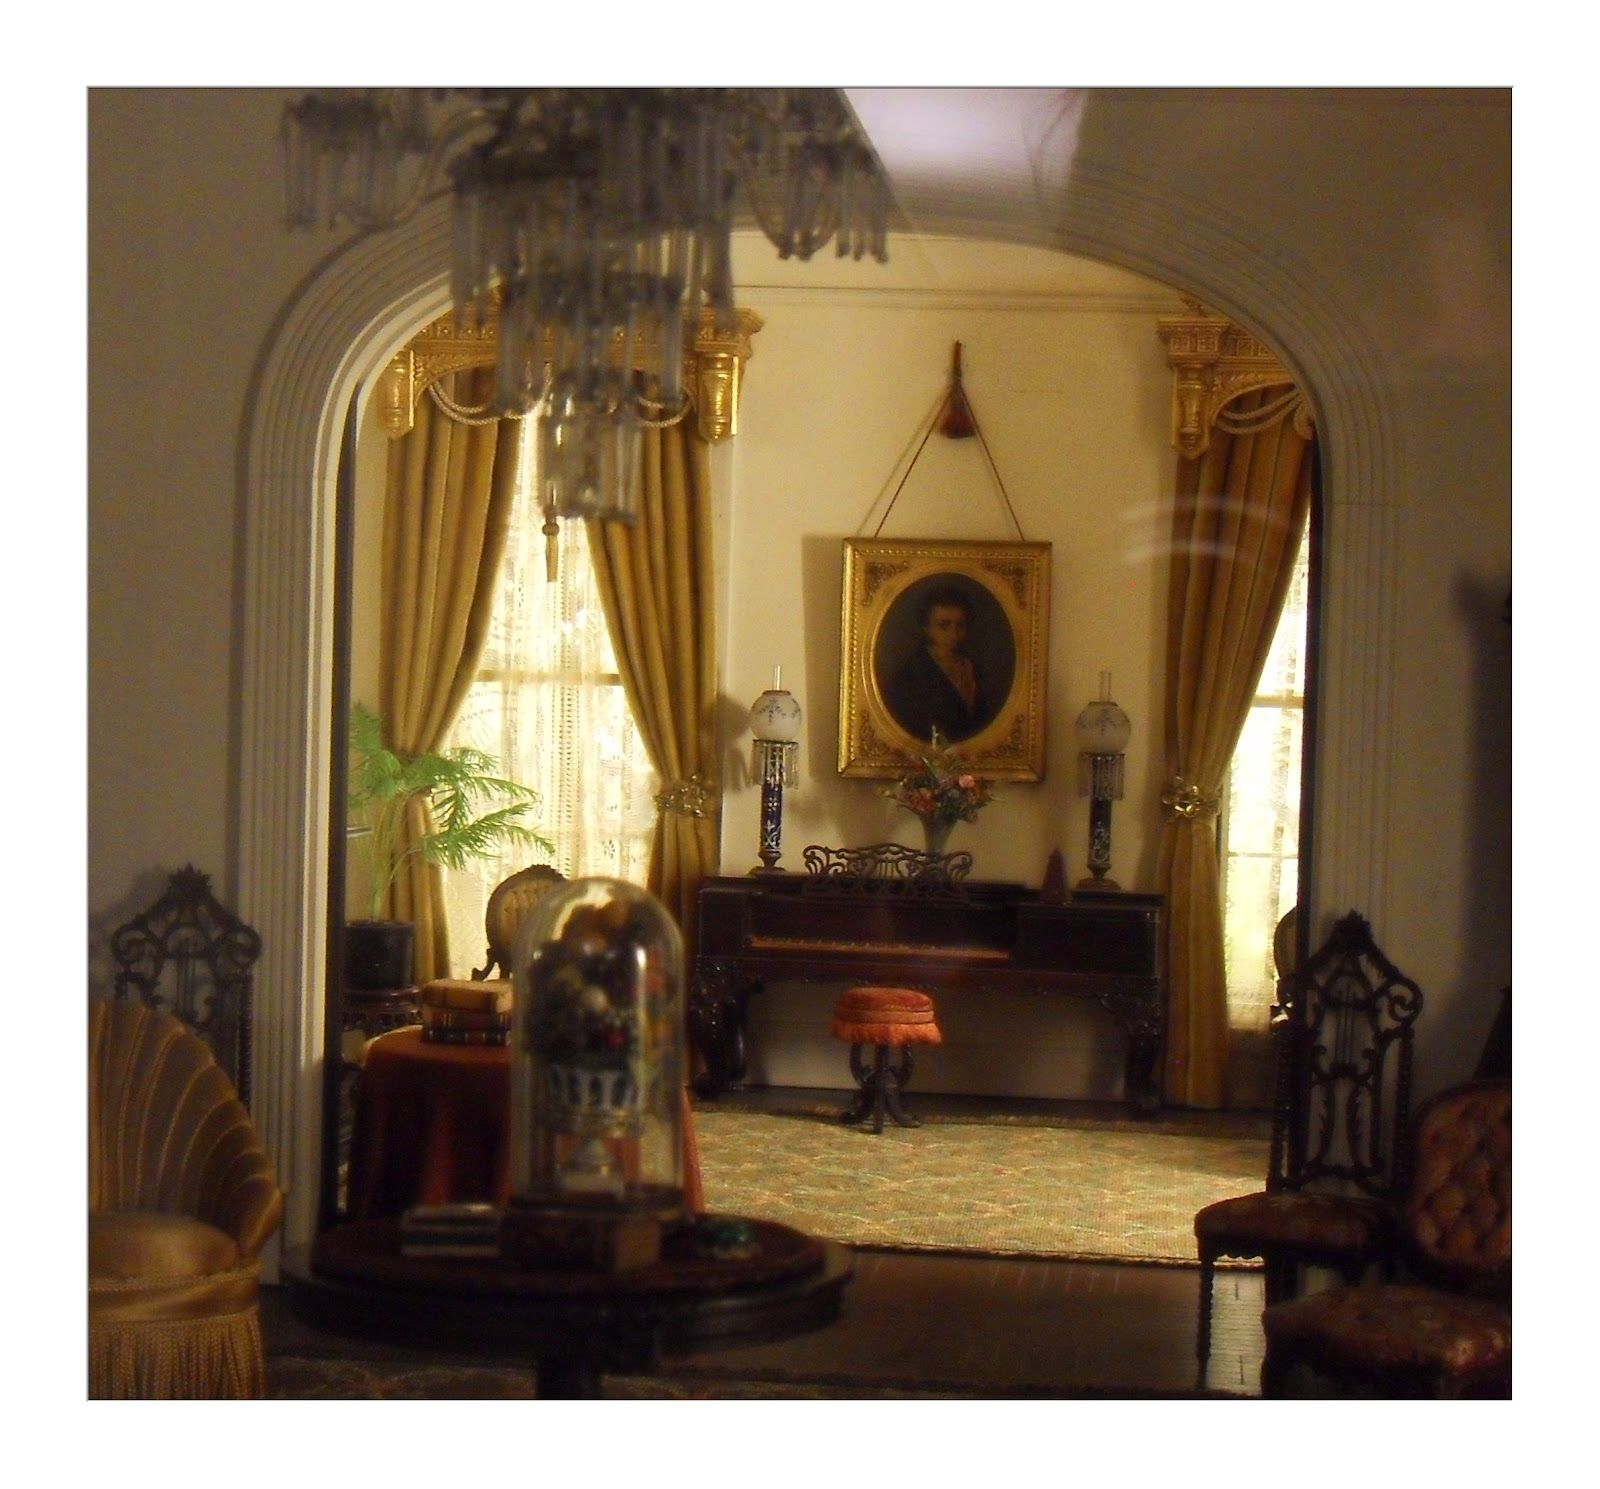 Narcissa Niblack Thorne Miniature Room Art Institute Of Chicago. Rooms